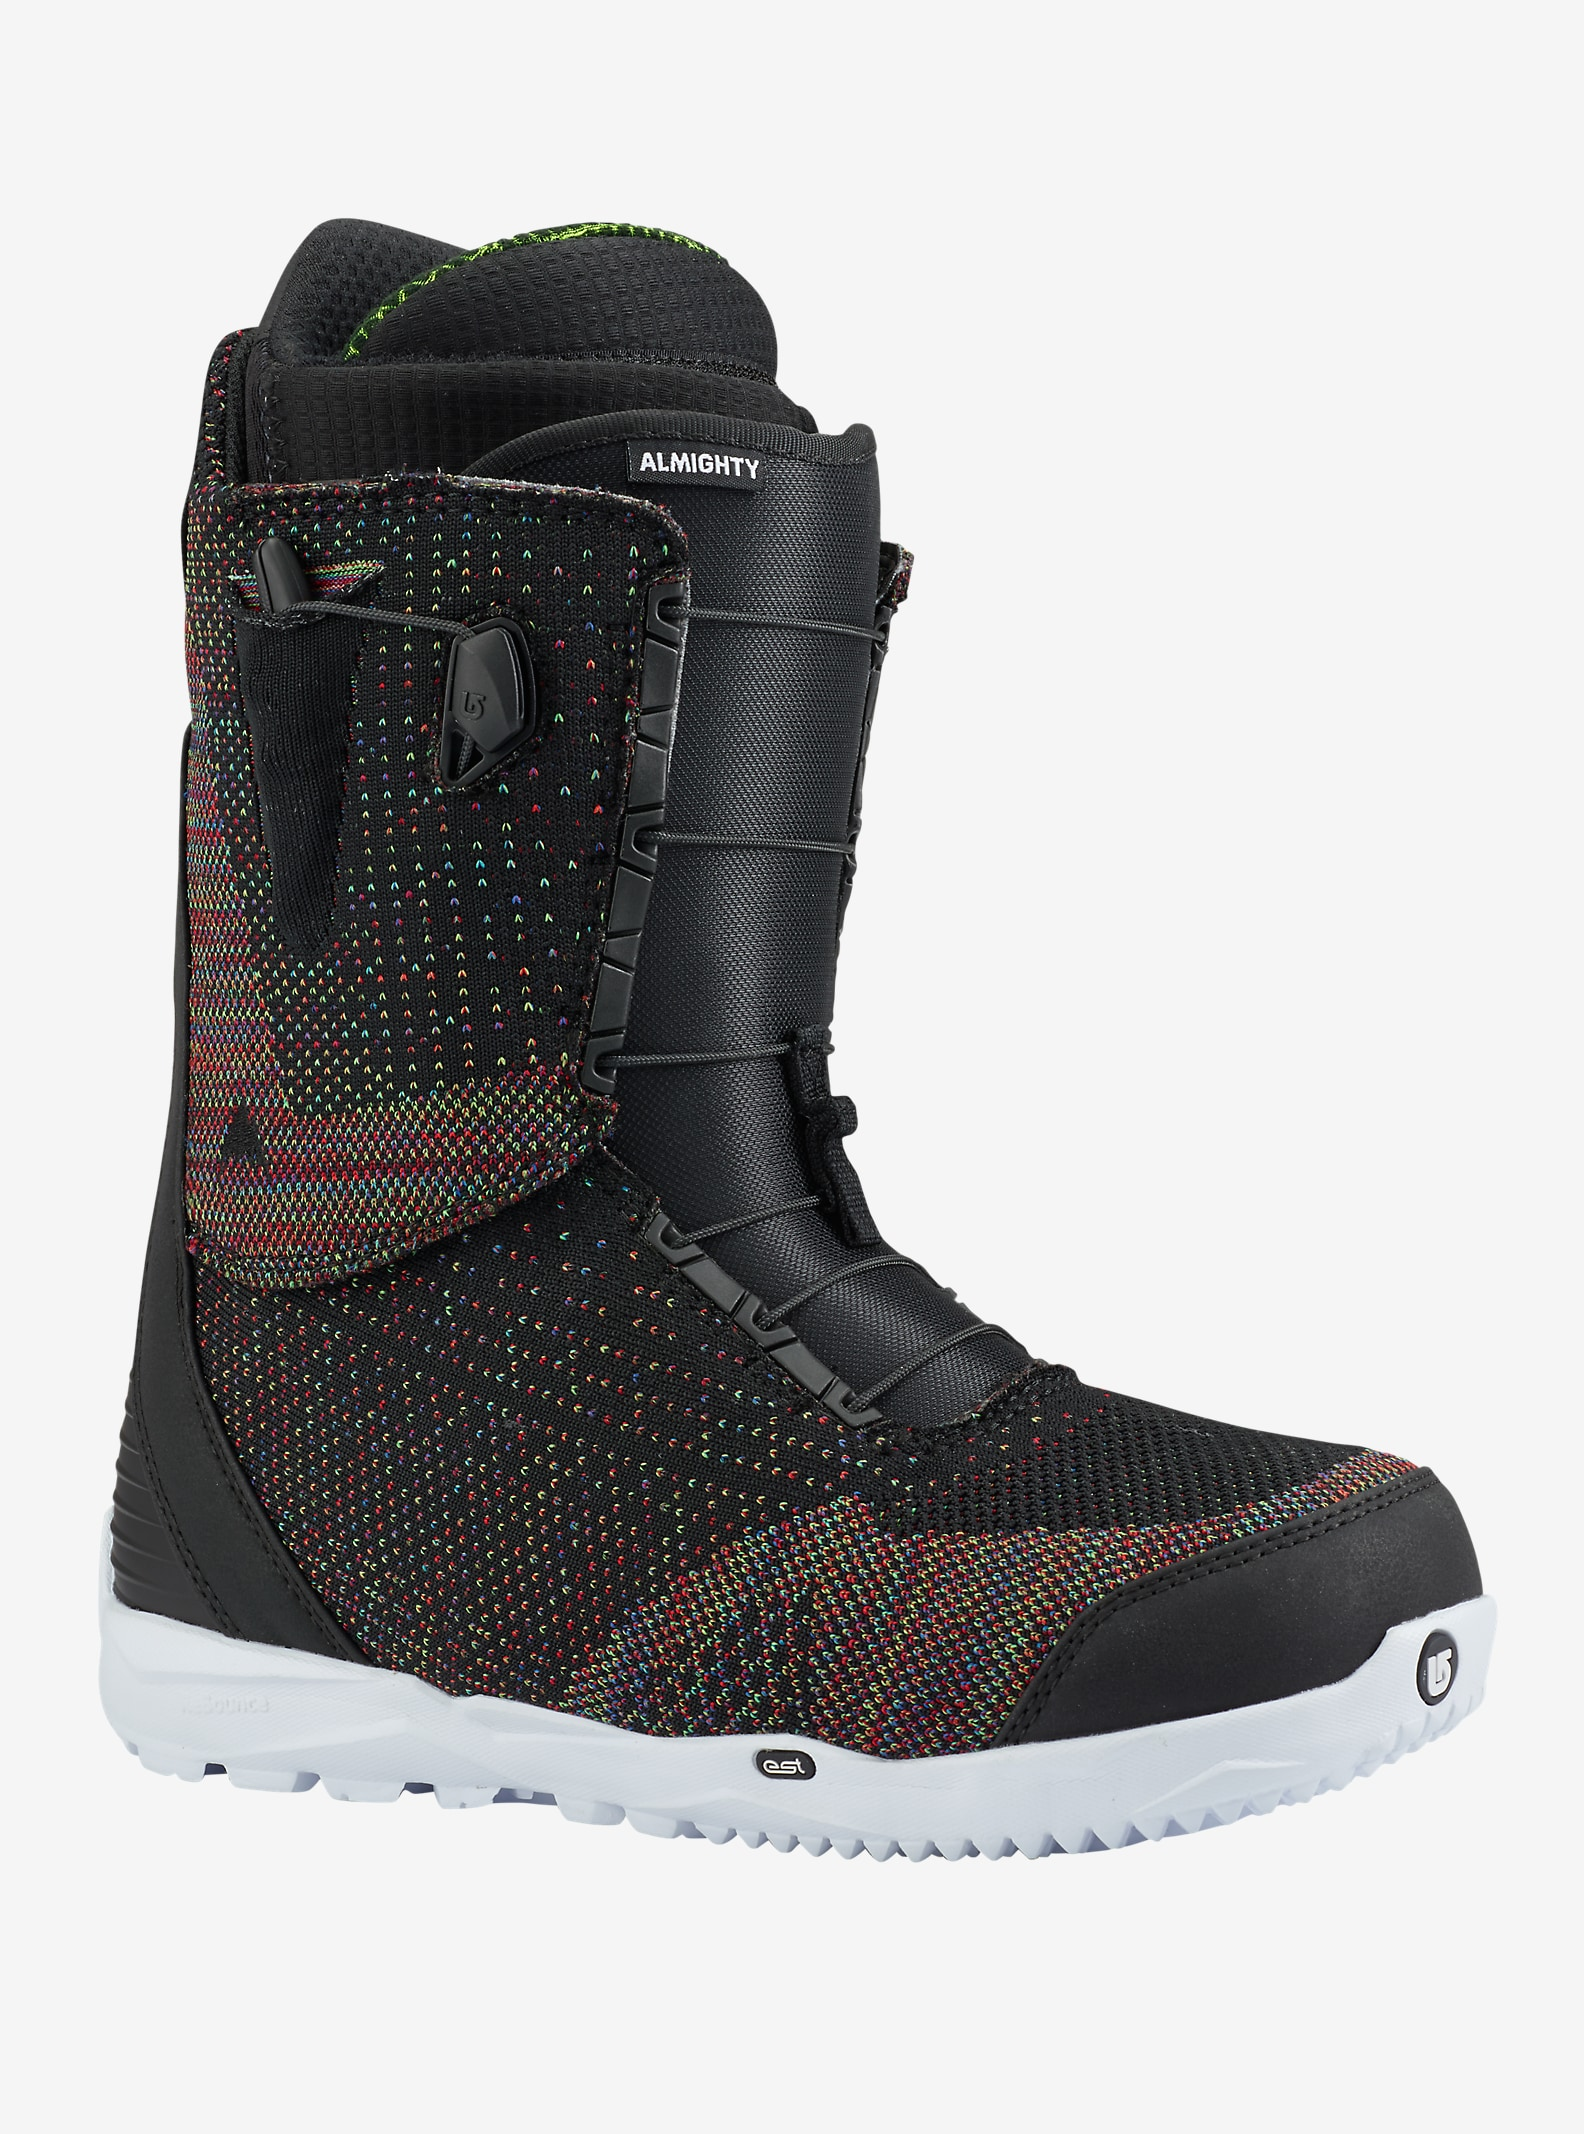 Burton Almighty LTD Snowboard Boot shown in Black / Multi